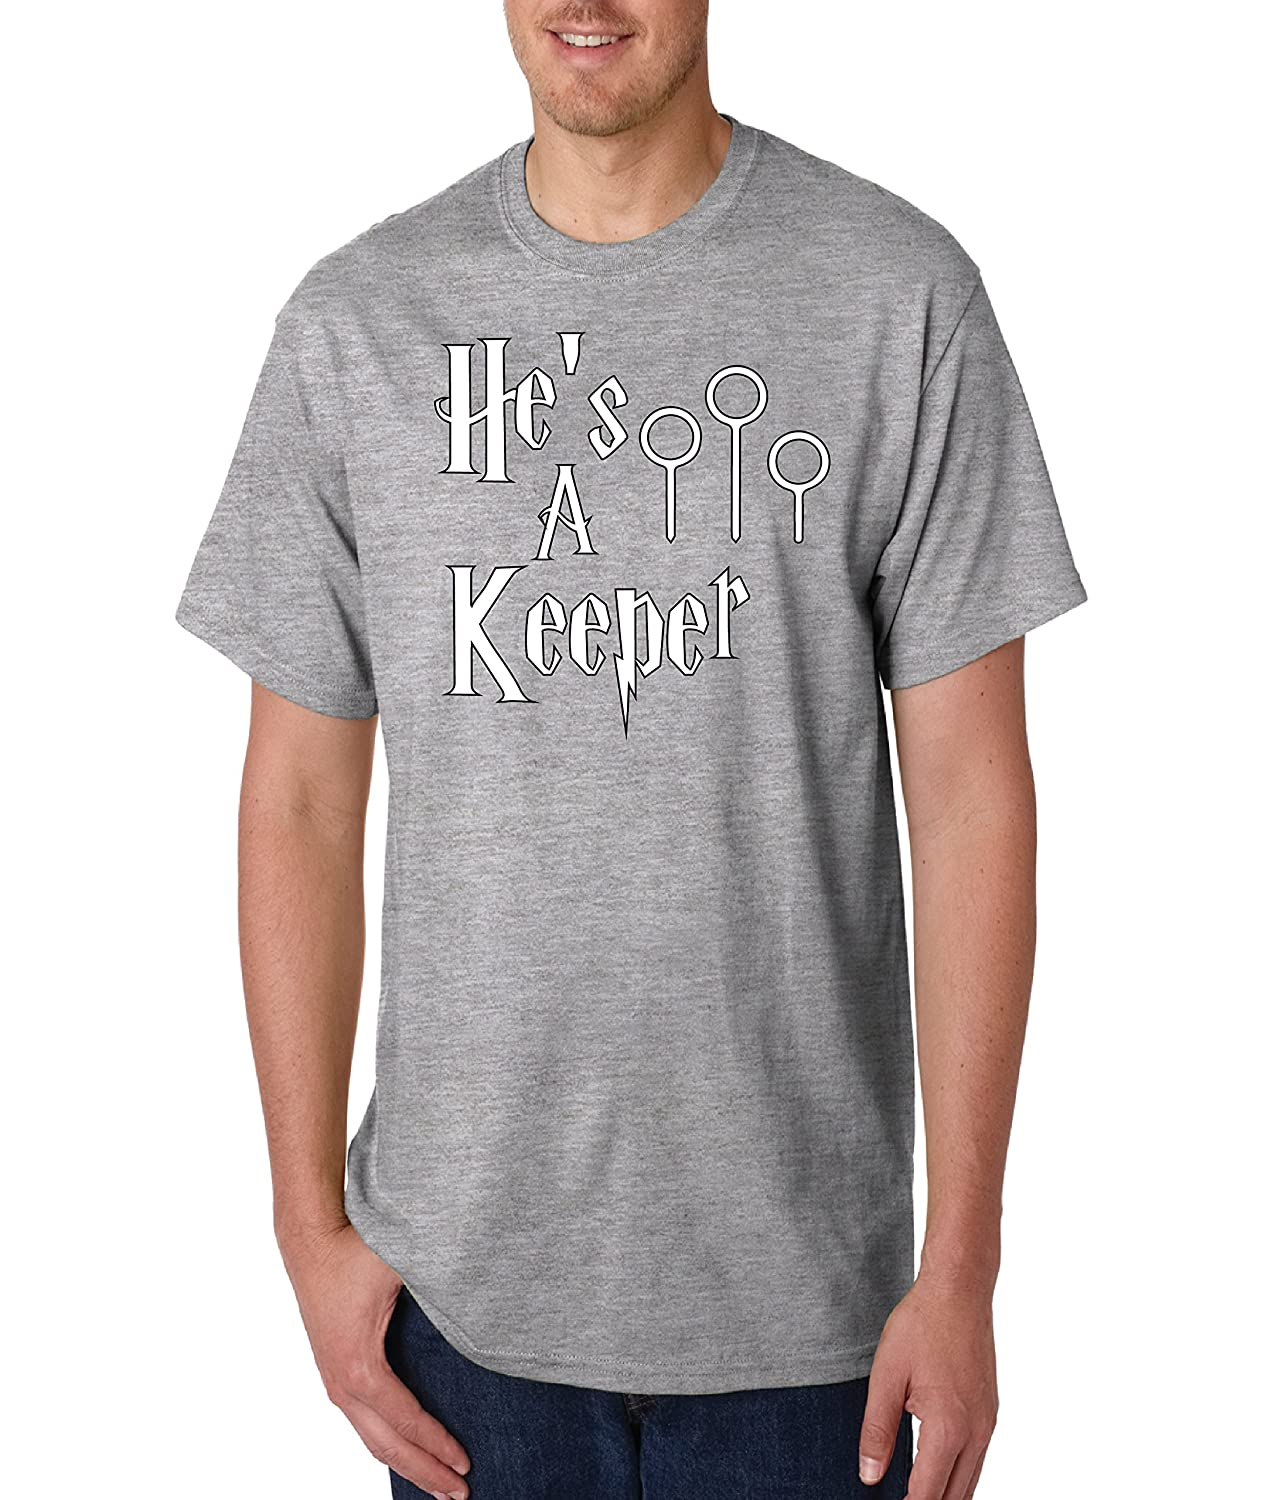 bc7f208d28 He's A Keeper Couples T-Shirt, Couples Gift Wedding, Anniversary, Newlywed  Matching T-Shirts, Vacation Tees, Honeymoon Shirt | Amazon.com